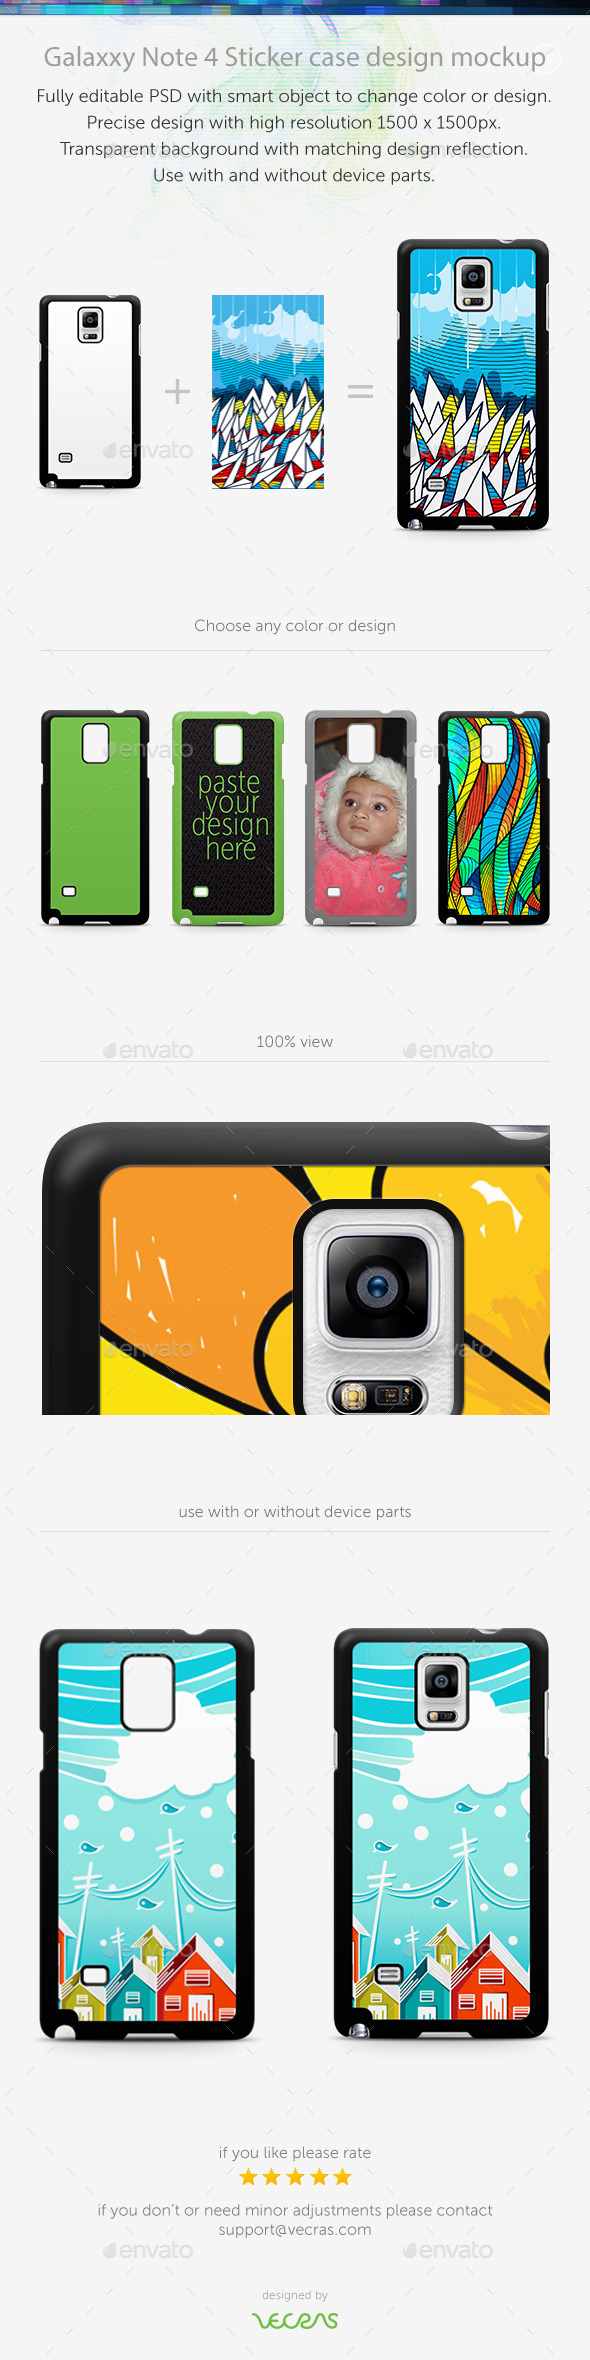 Galaxxy Note 4 Sticker Case Design Mockup - Displays Product Mock-Ups